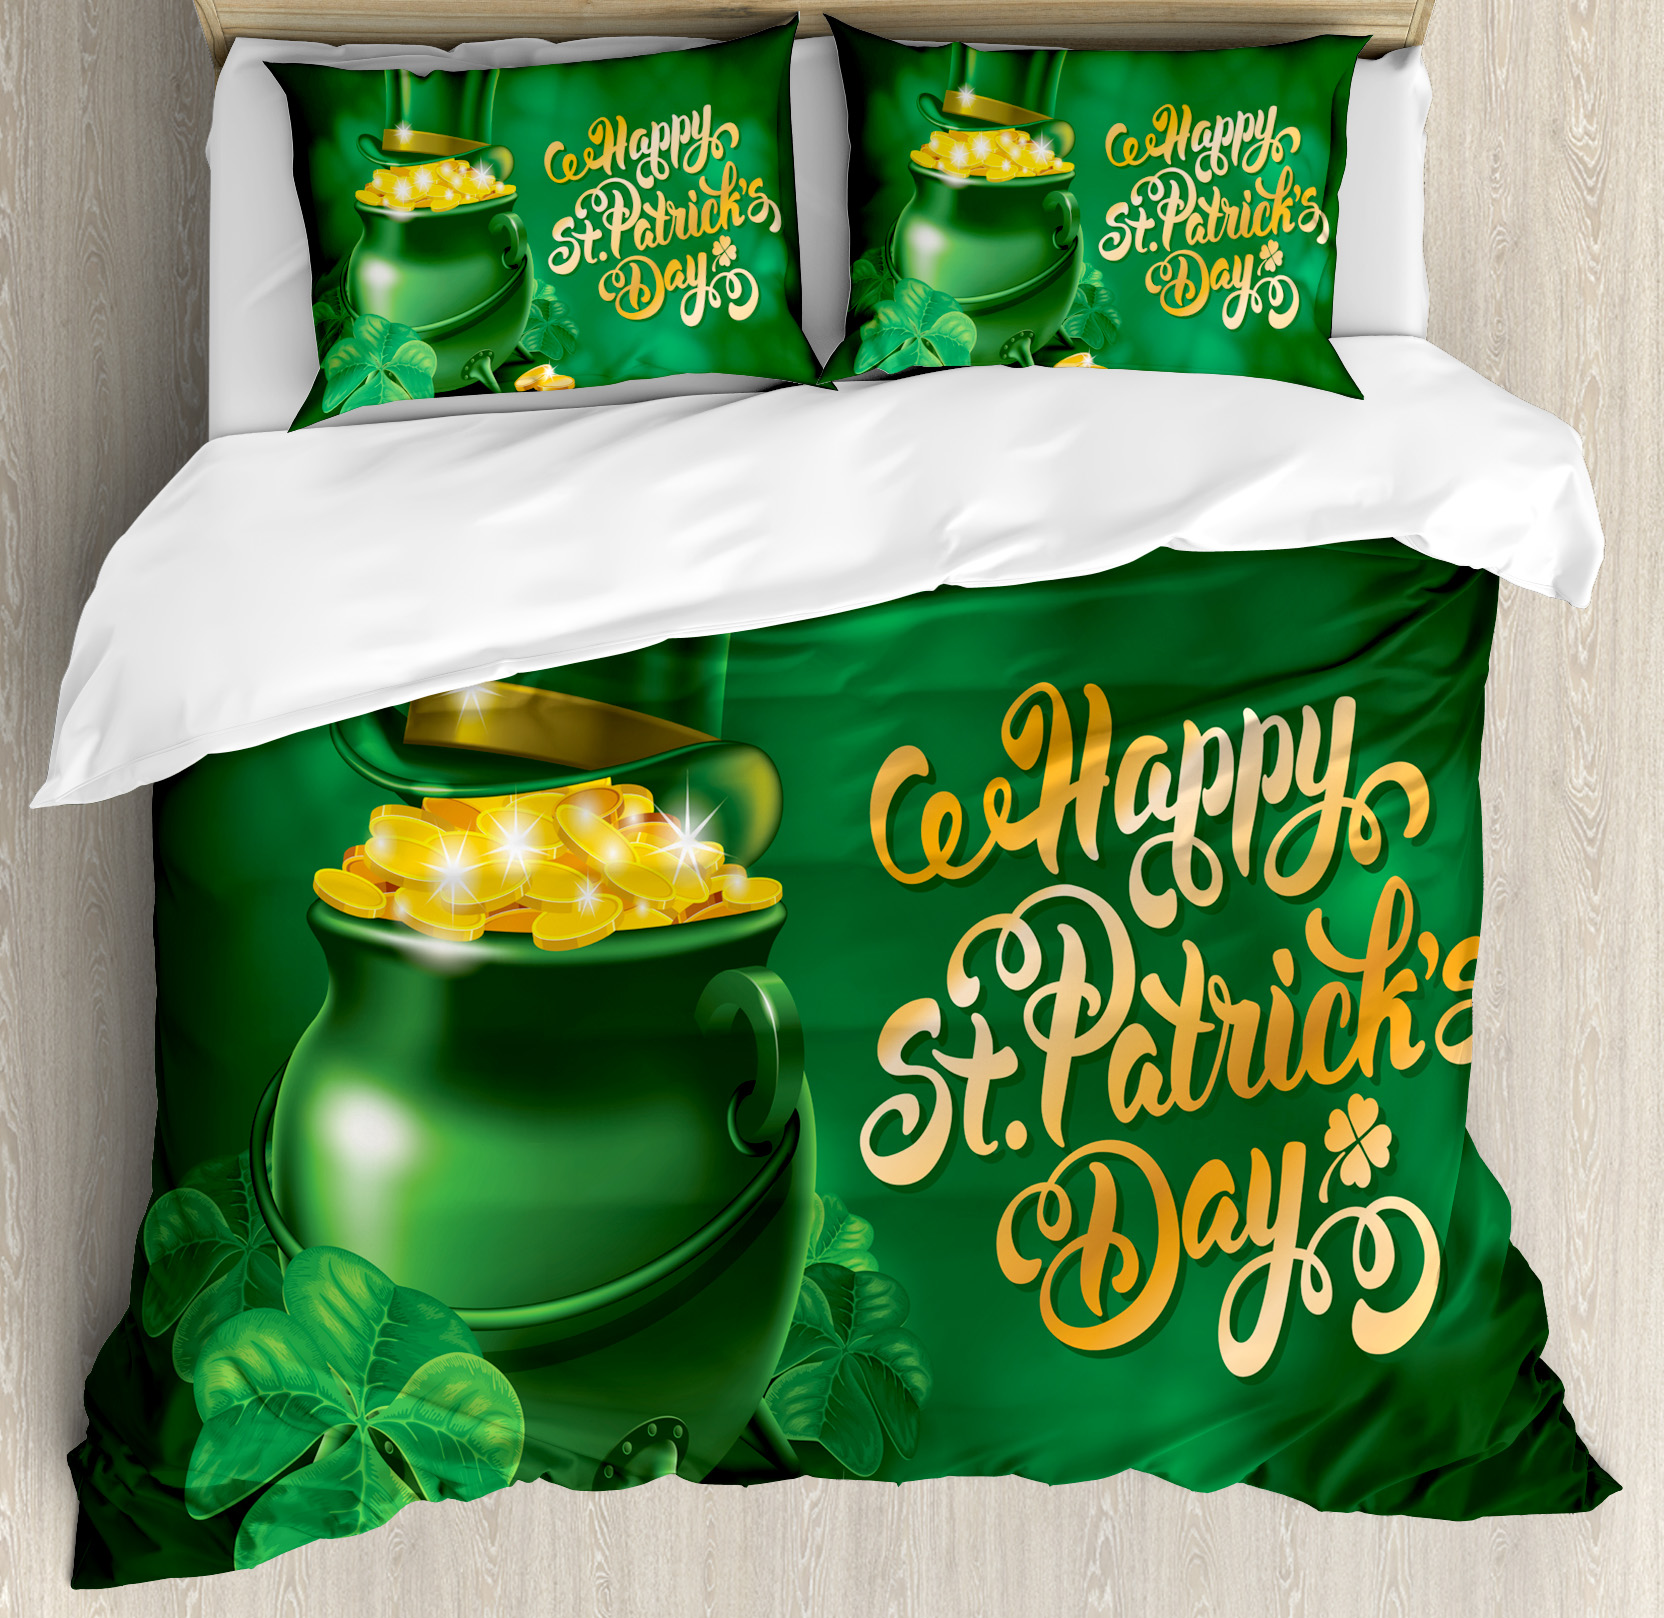 St. Patrick's Day King Size Duvet Cover Set, Large Pot of Gold Leprechaun Hat and Shamrocks Greetings 17th March, Decorative 3 Piece Bedding Set with 2 Pillow Shams, Gold and Emerald, by Ambesonne